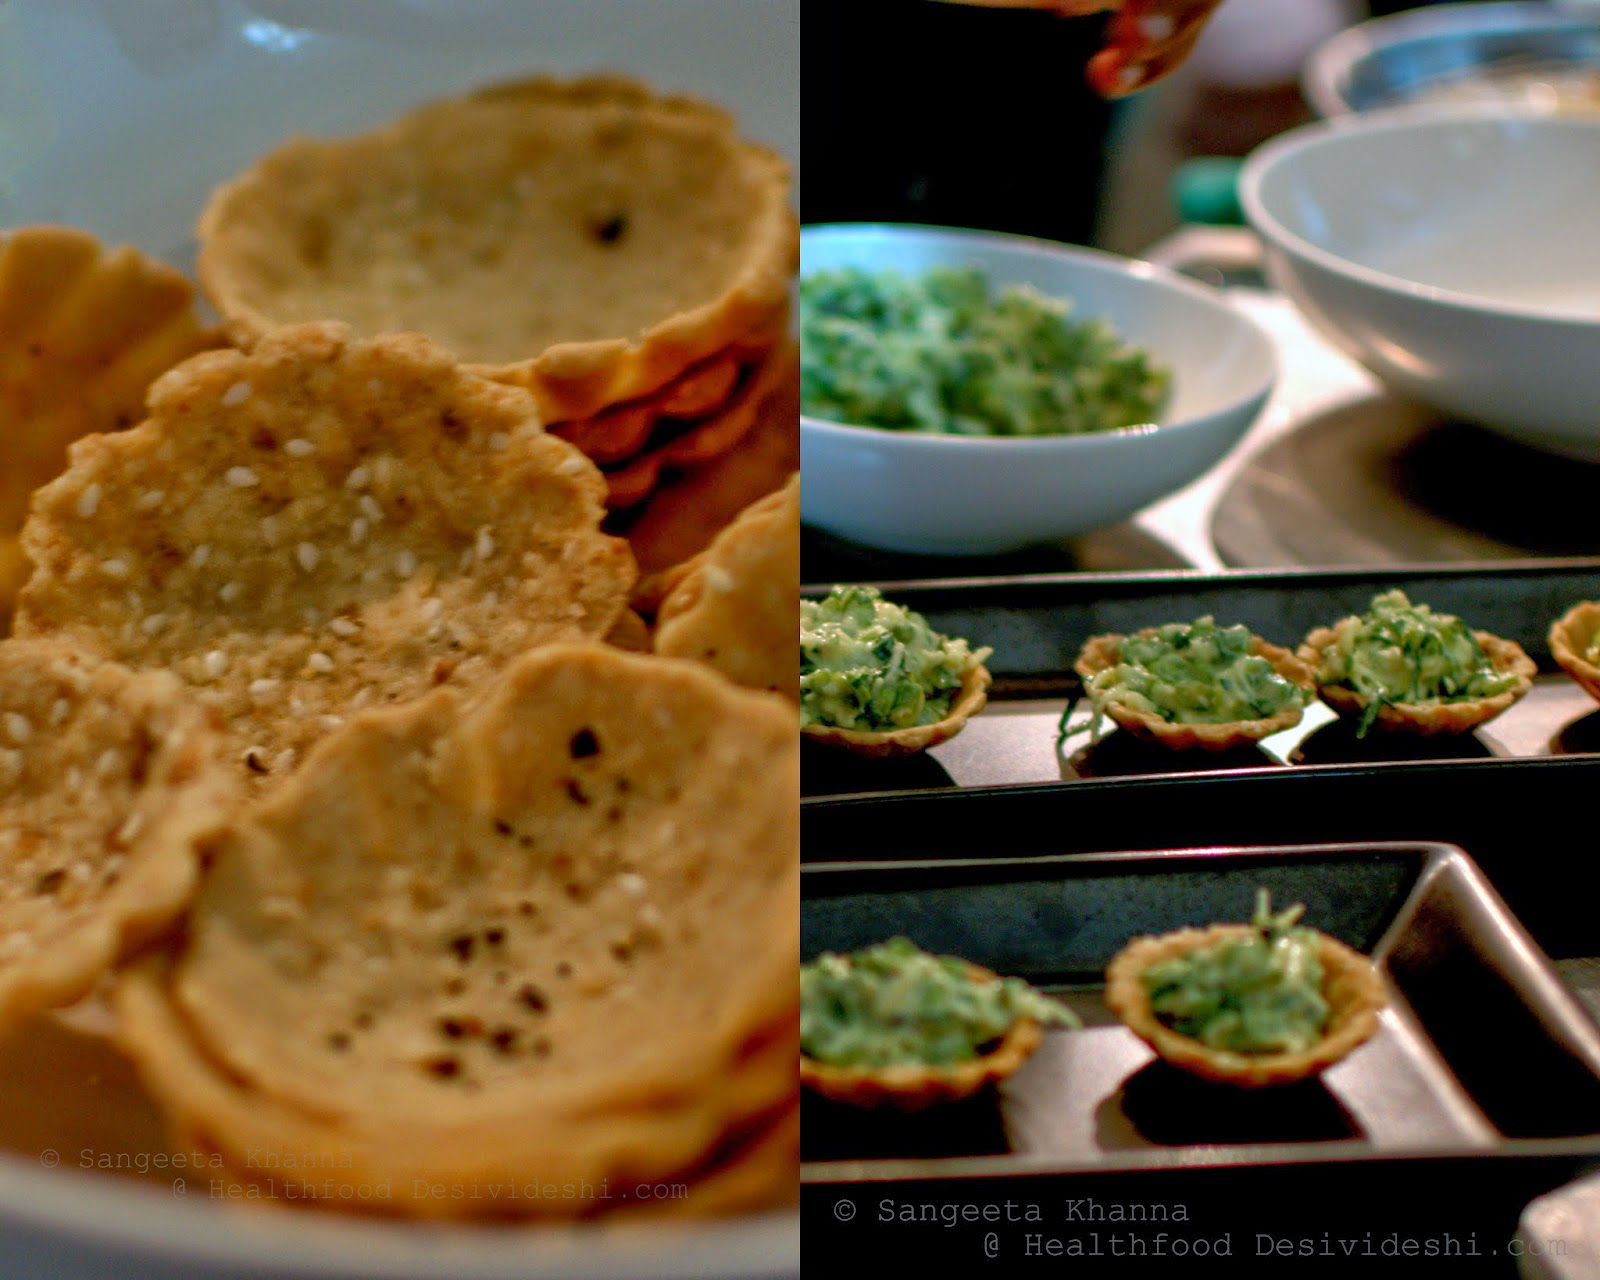 gluten free tart shells with broccoli coconut salad